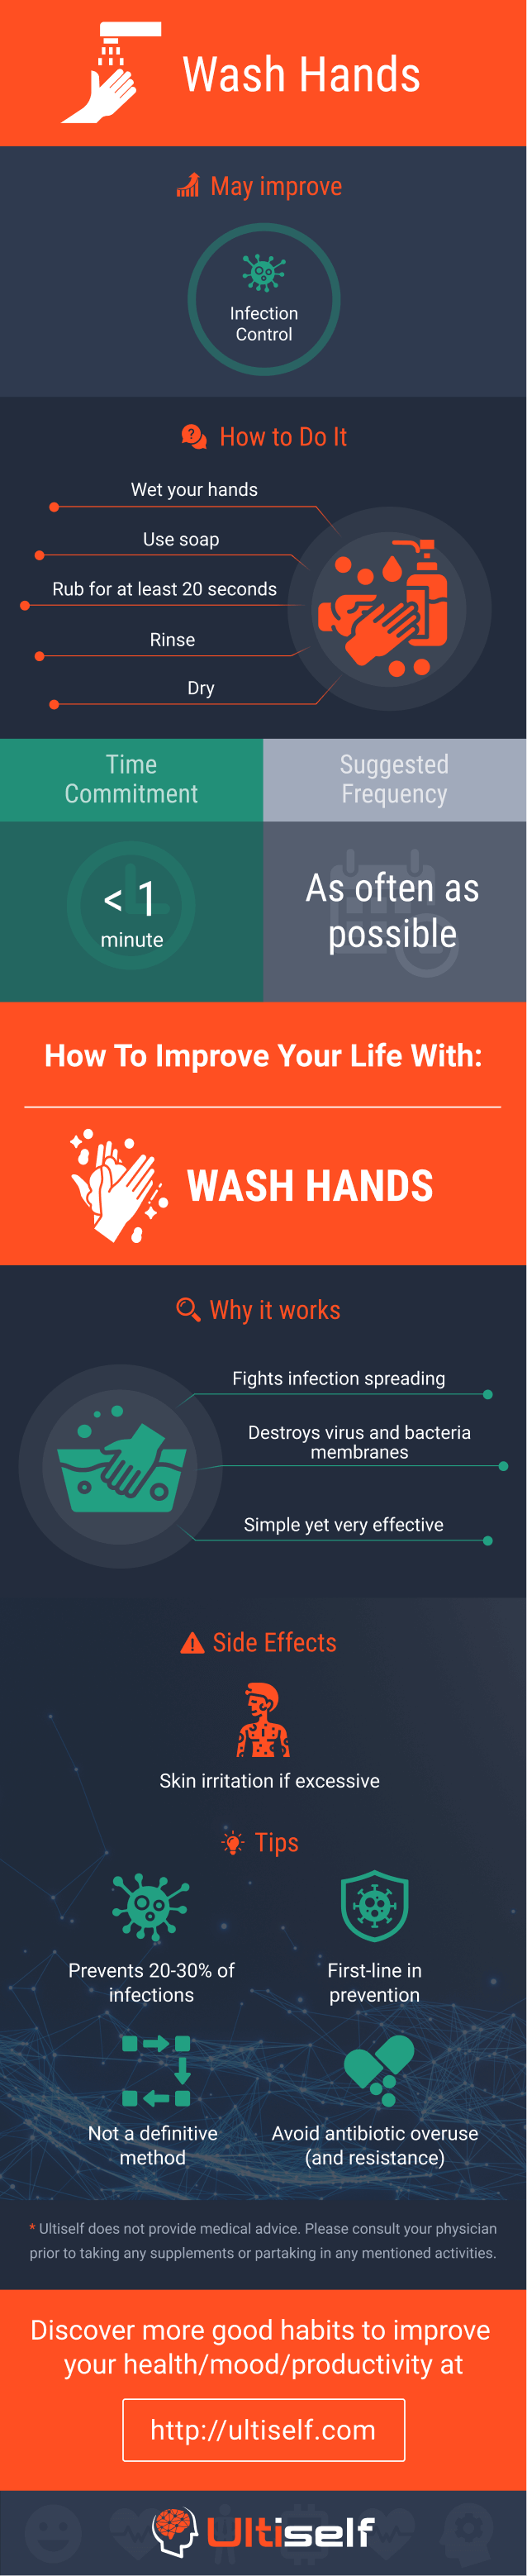 Wash Hands infographic